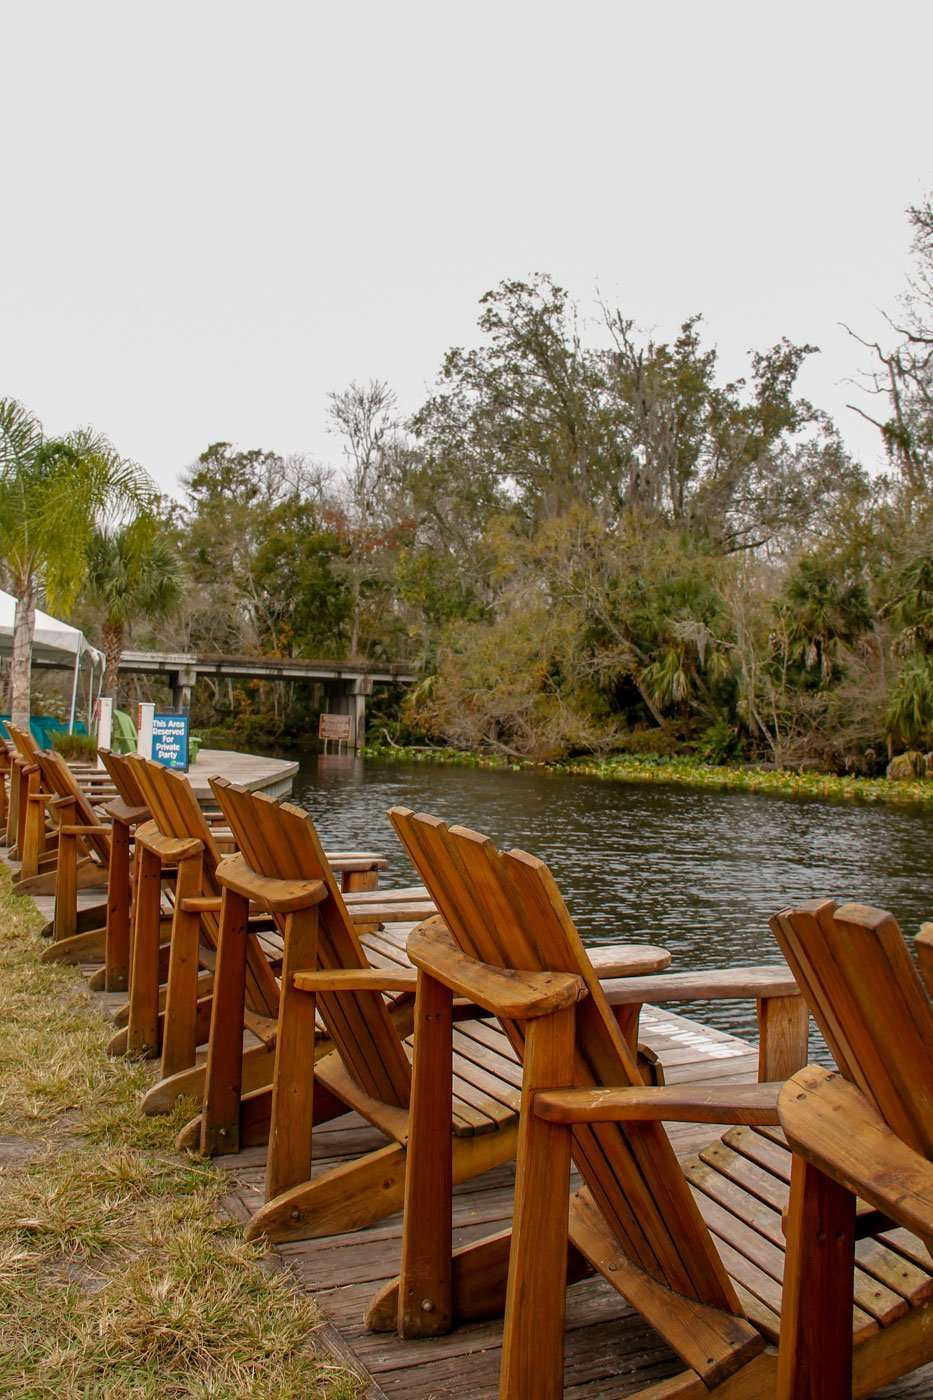 chairs lined up along the Wekiva River at Wekiva Island